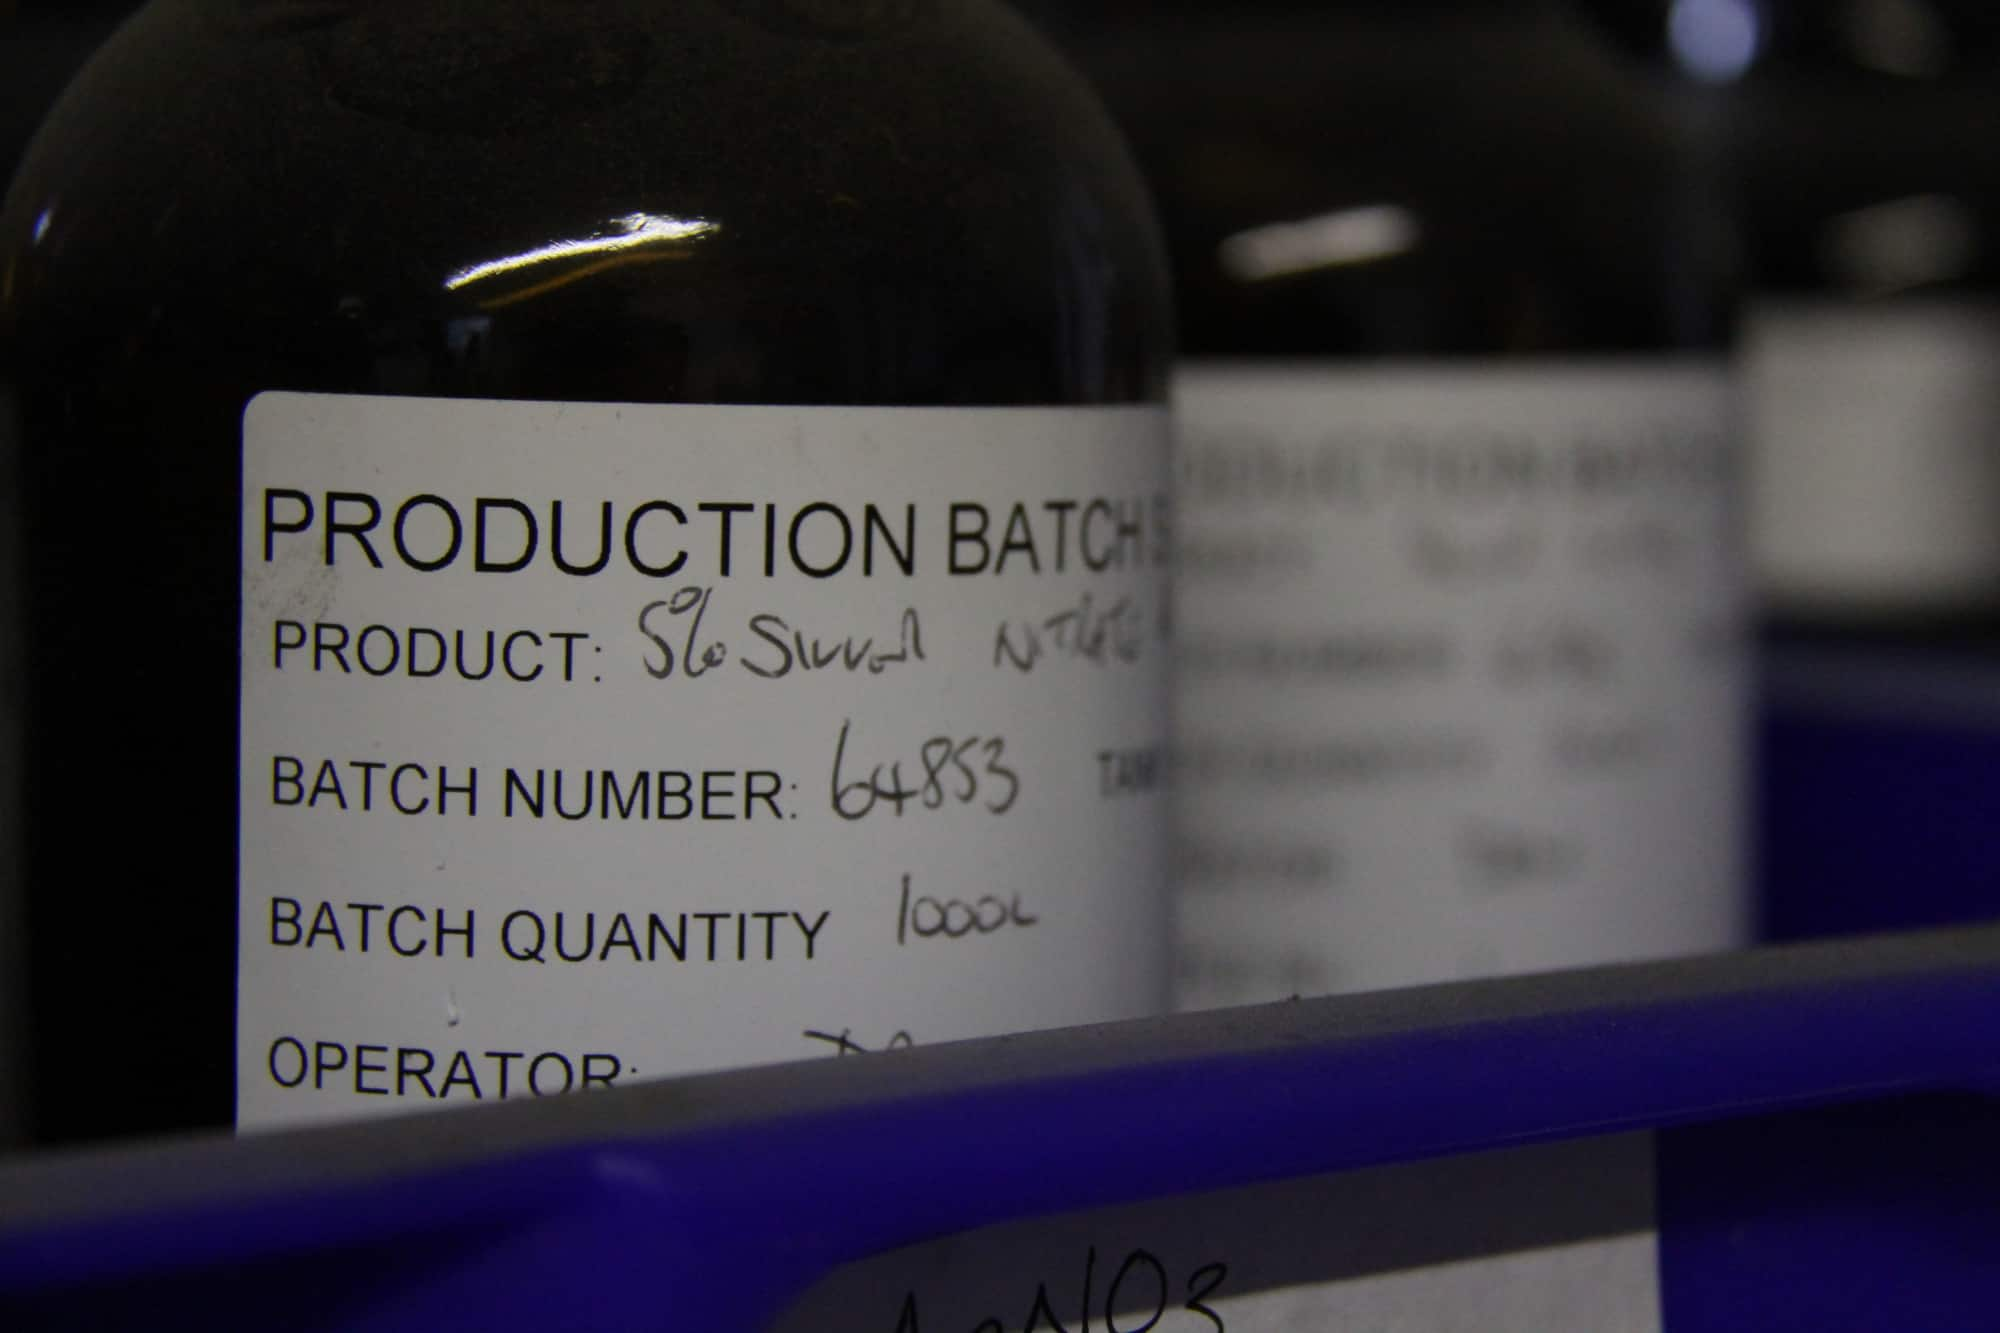 Featured blog image showing a close up of a bottle label